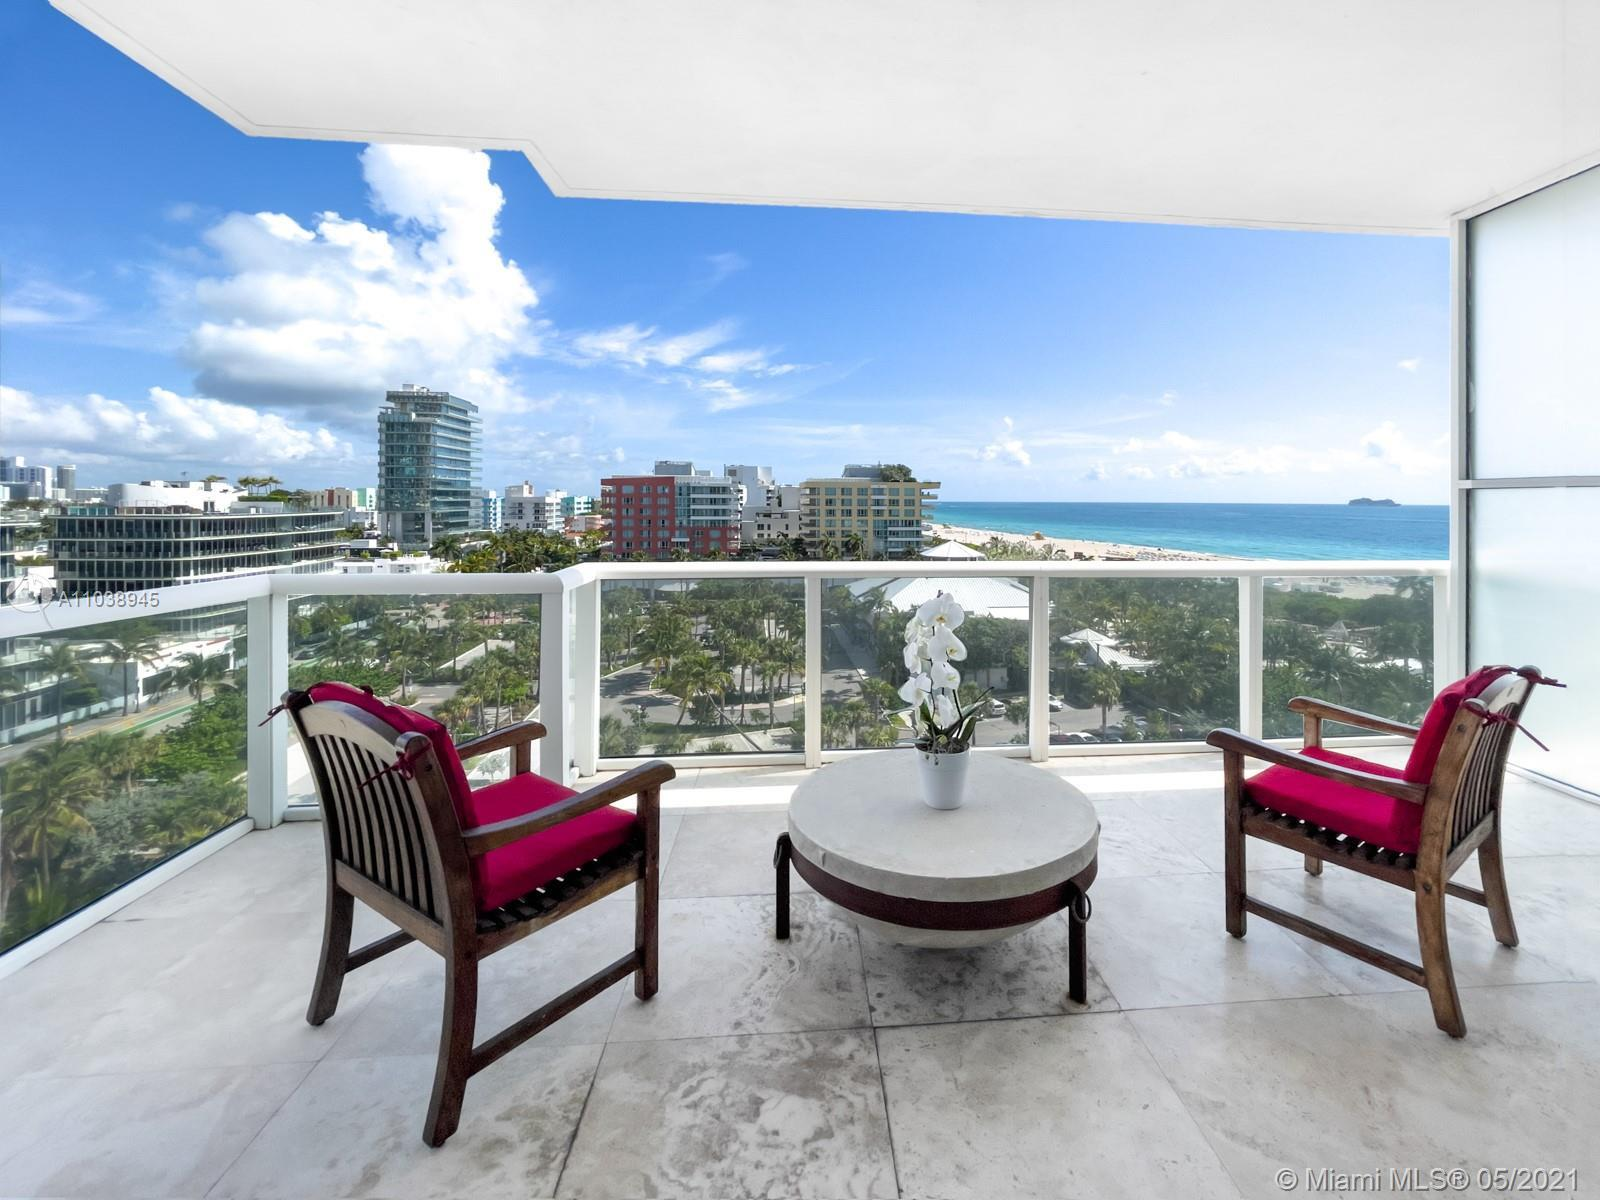 Live the South of Fifth lifestyle at the Continuum on South Beach. This well proportioned 2 bedroom/